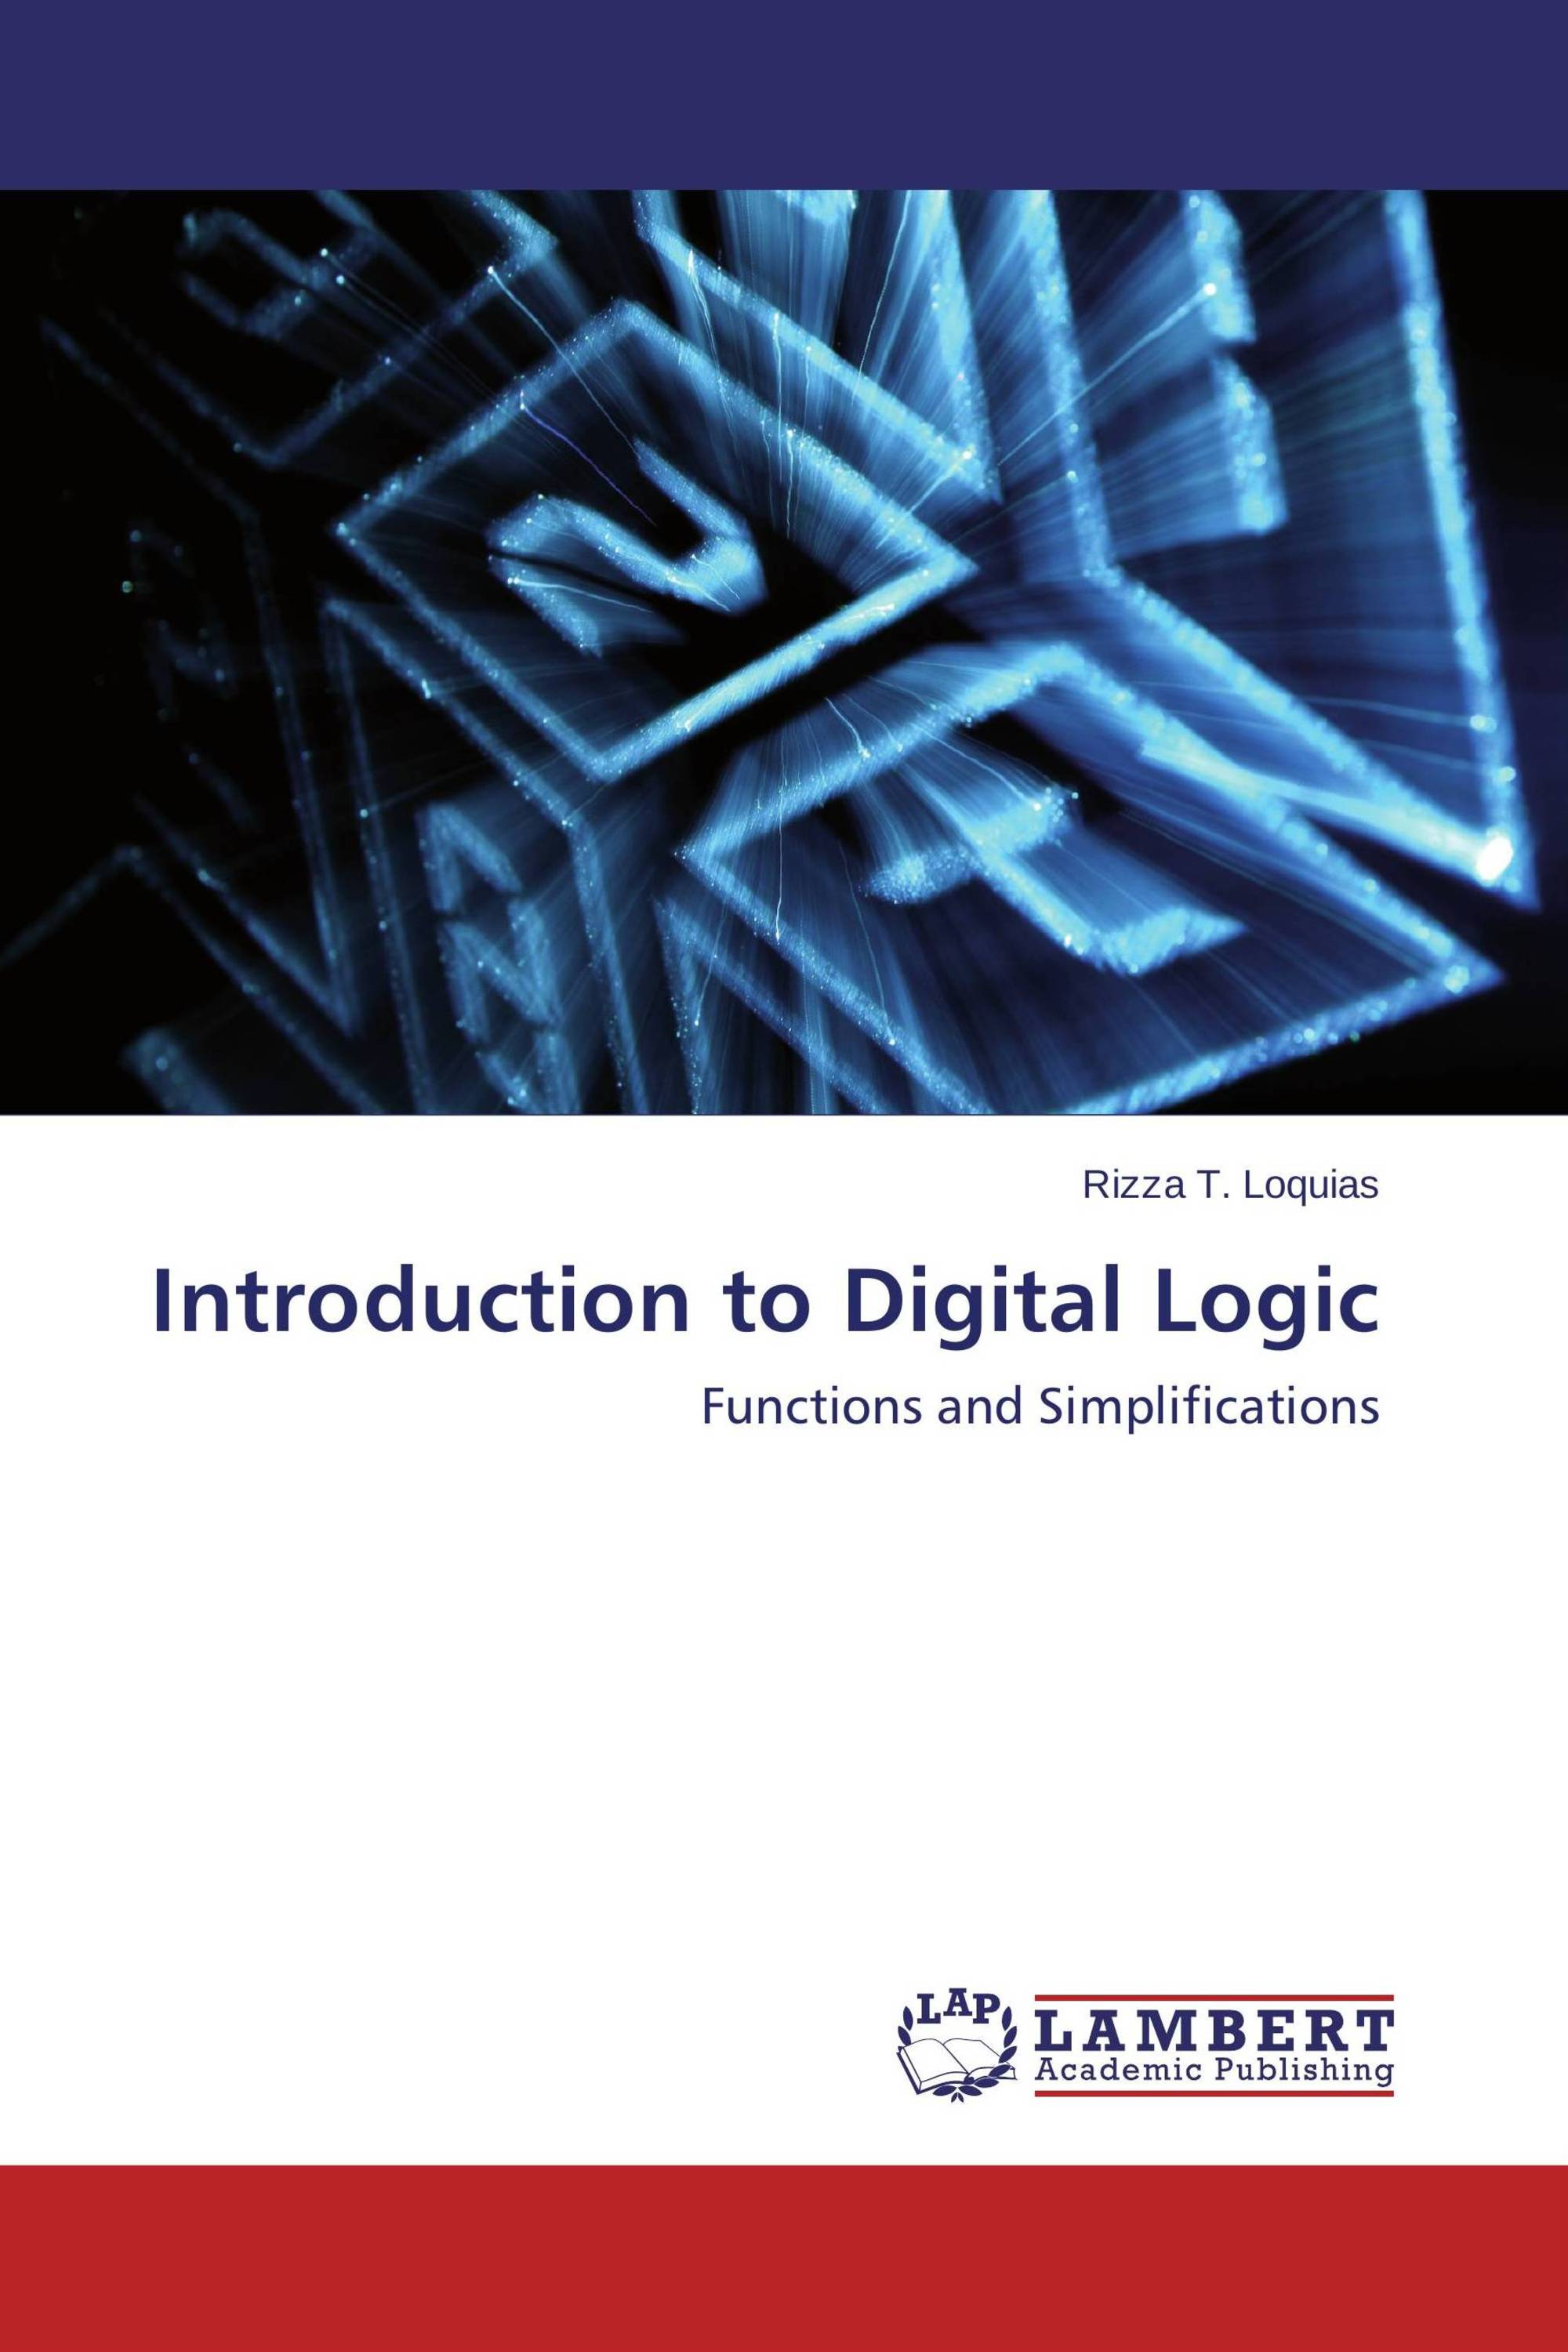 an introduction to digital logic Logic gates are the building blocks of digital circuits logic gates have one or two inputs that can be turned on or off, the output from the gate will vary depending on the type of logic gate.